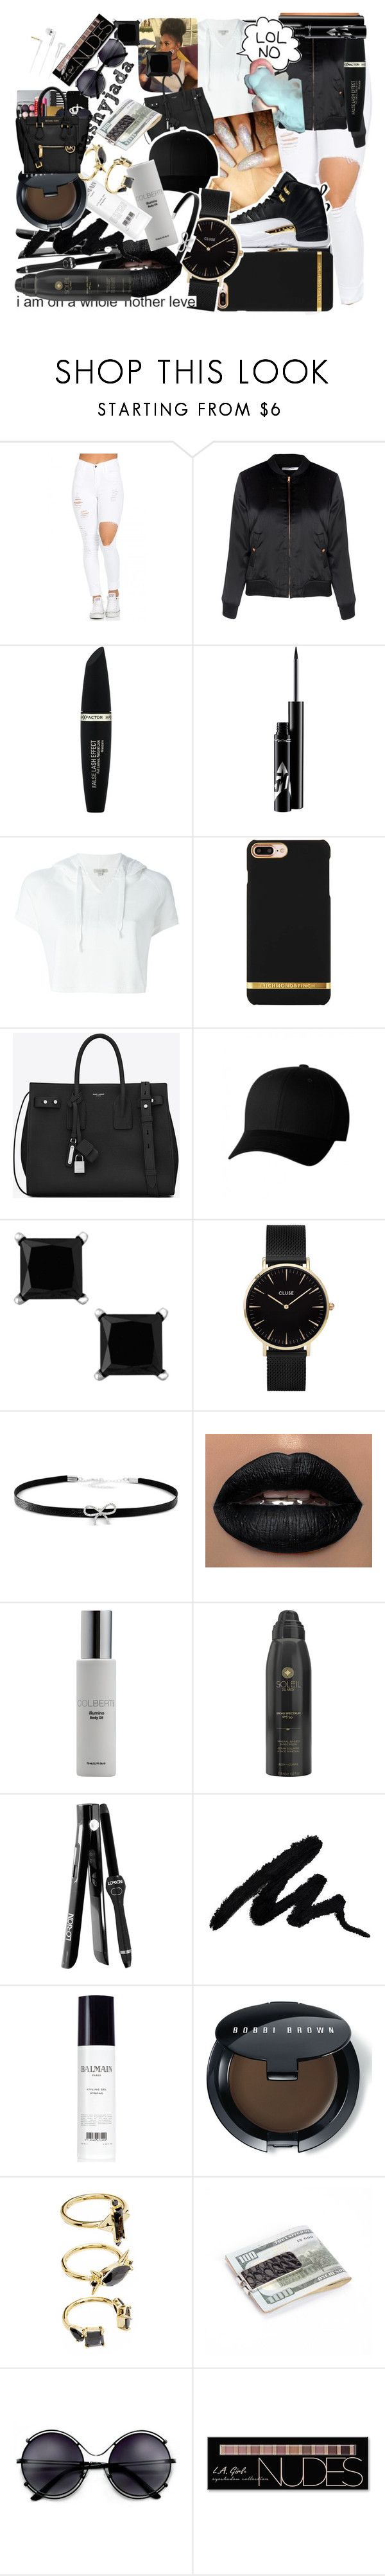 """""""Untitled #561"""" by dtx-jada ❤ liked on Polyvore featuring Glamorous, Max Factor, Calvin Klein Jeans, Yves Saint Laurent, Flexfit, CLUSE, Giani Bernini, Colbert MD, Soleil Toujours and Lorion"""